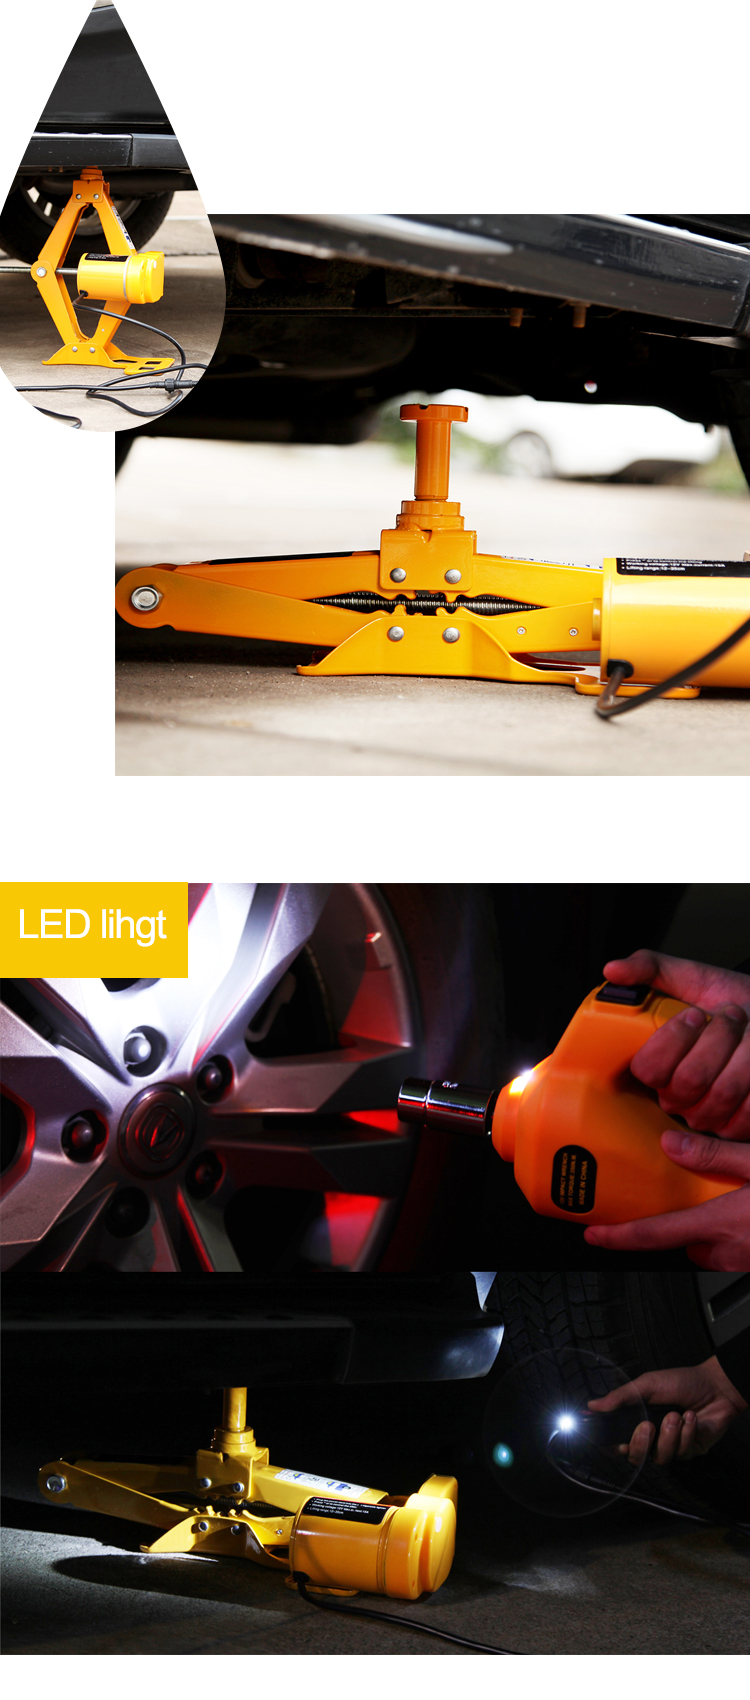 Widely Used CE ISO Standard 12 Volt Electric Wrench 3 Ton Mobile Automatic High Lift Scissor Car Electric Jack for SUV